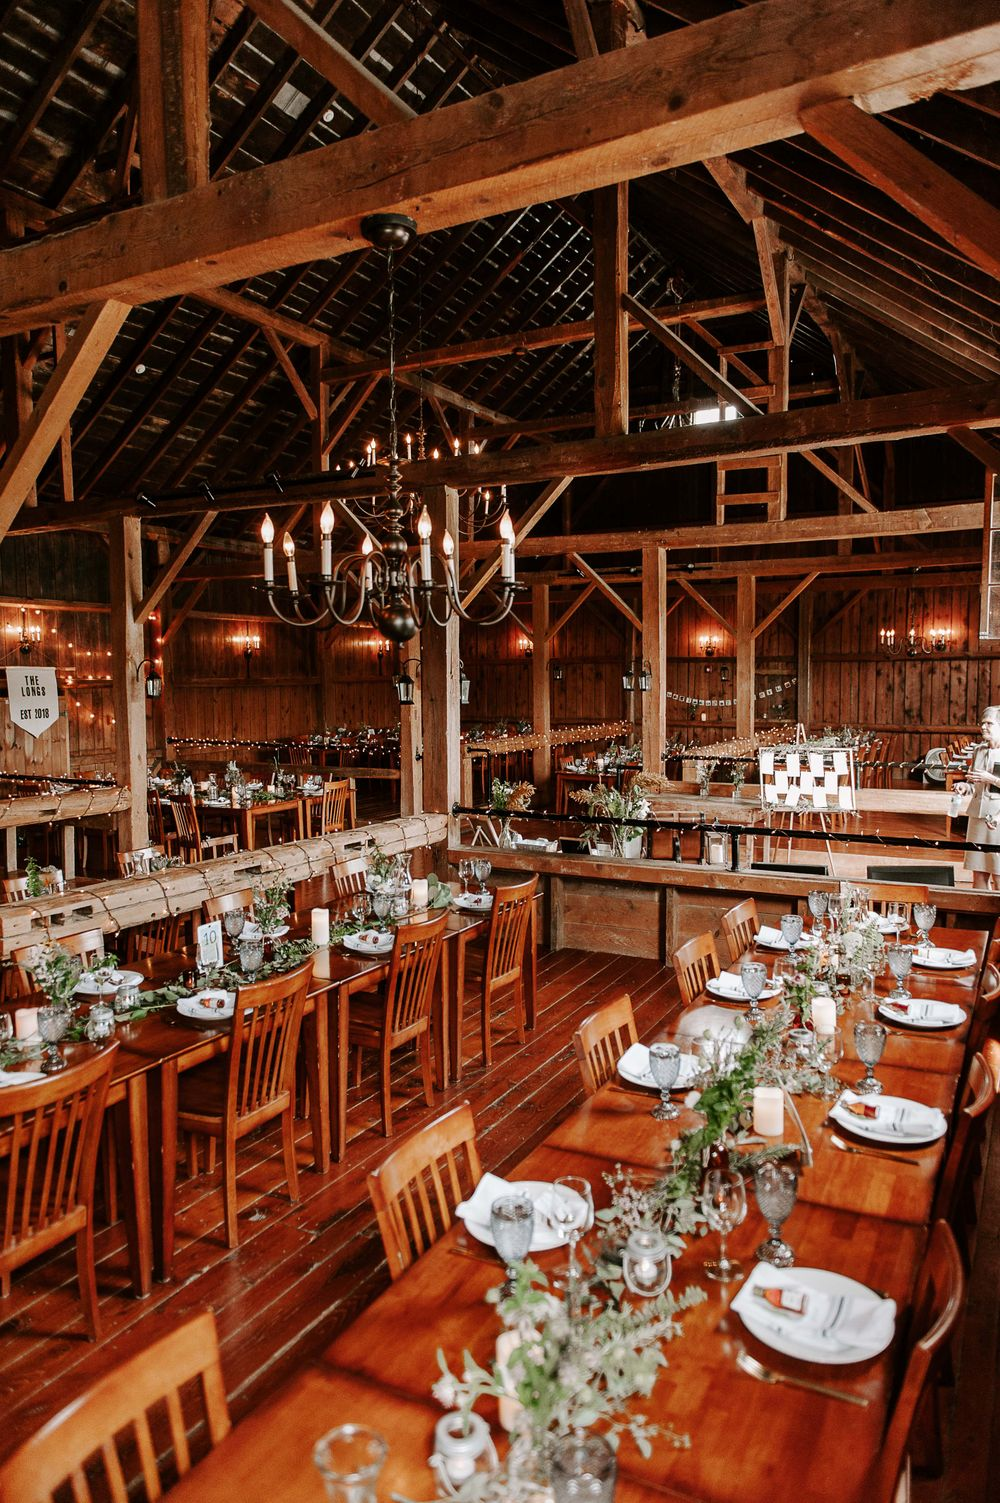 1914 halyloft Barn at Boyden Farm ready and waiting to host it's special guests for dinner. photo credit: L'Orangerie Photo